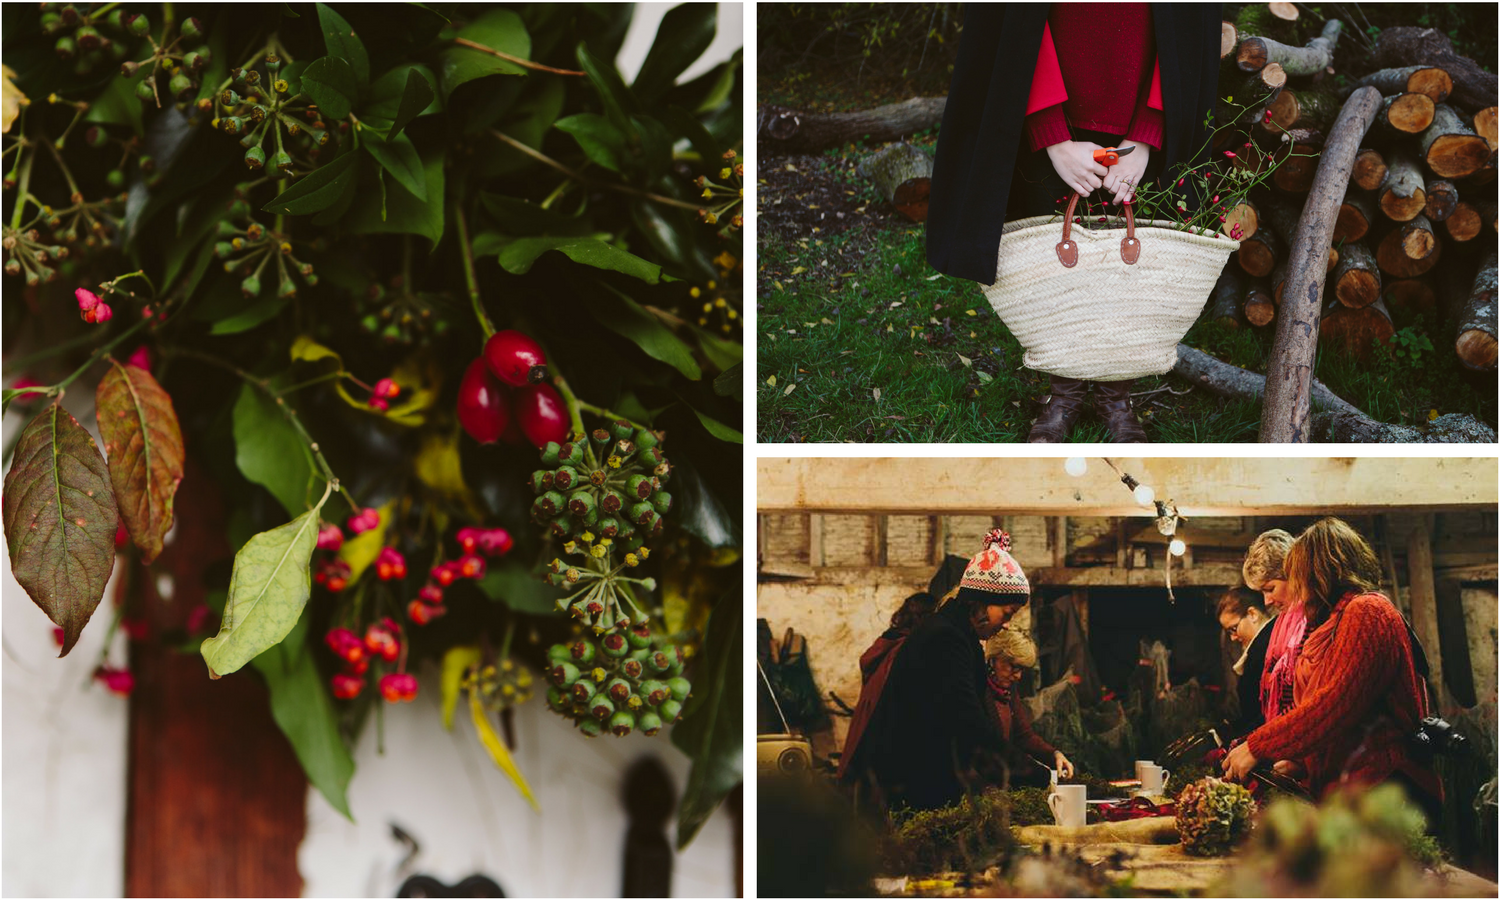 Christmas wreath workshop in West Sussex